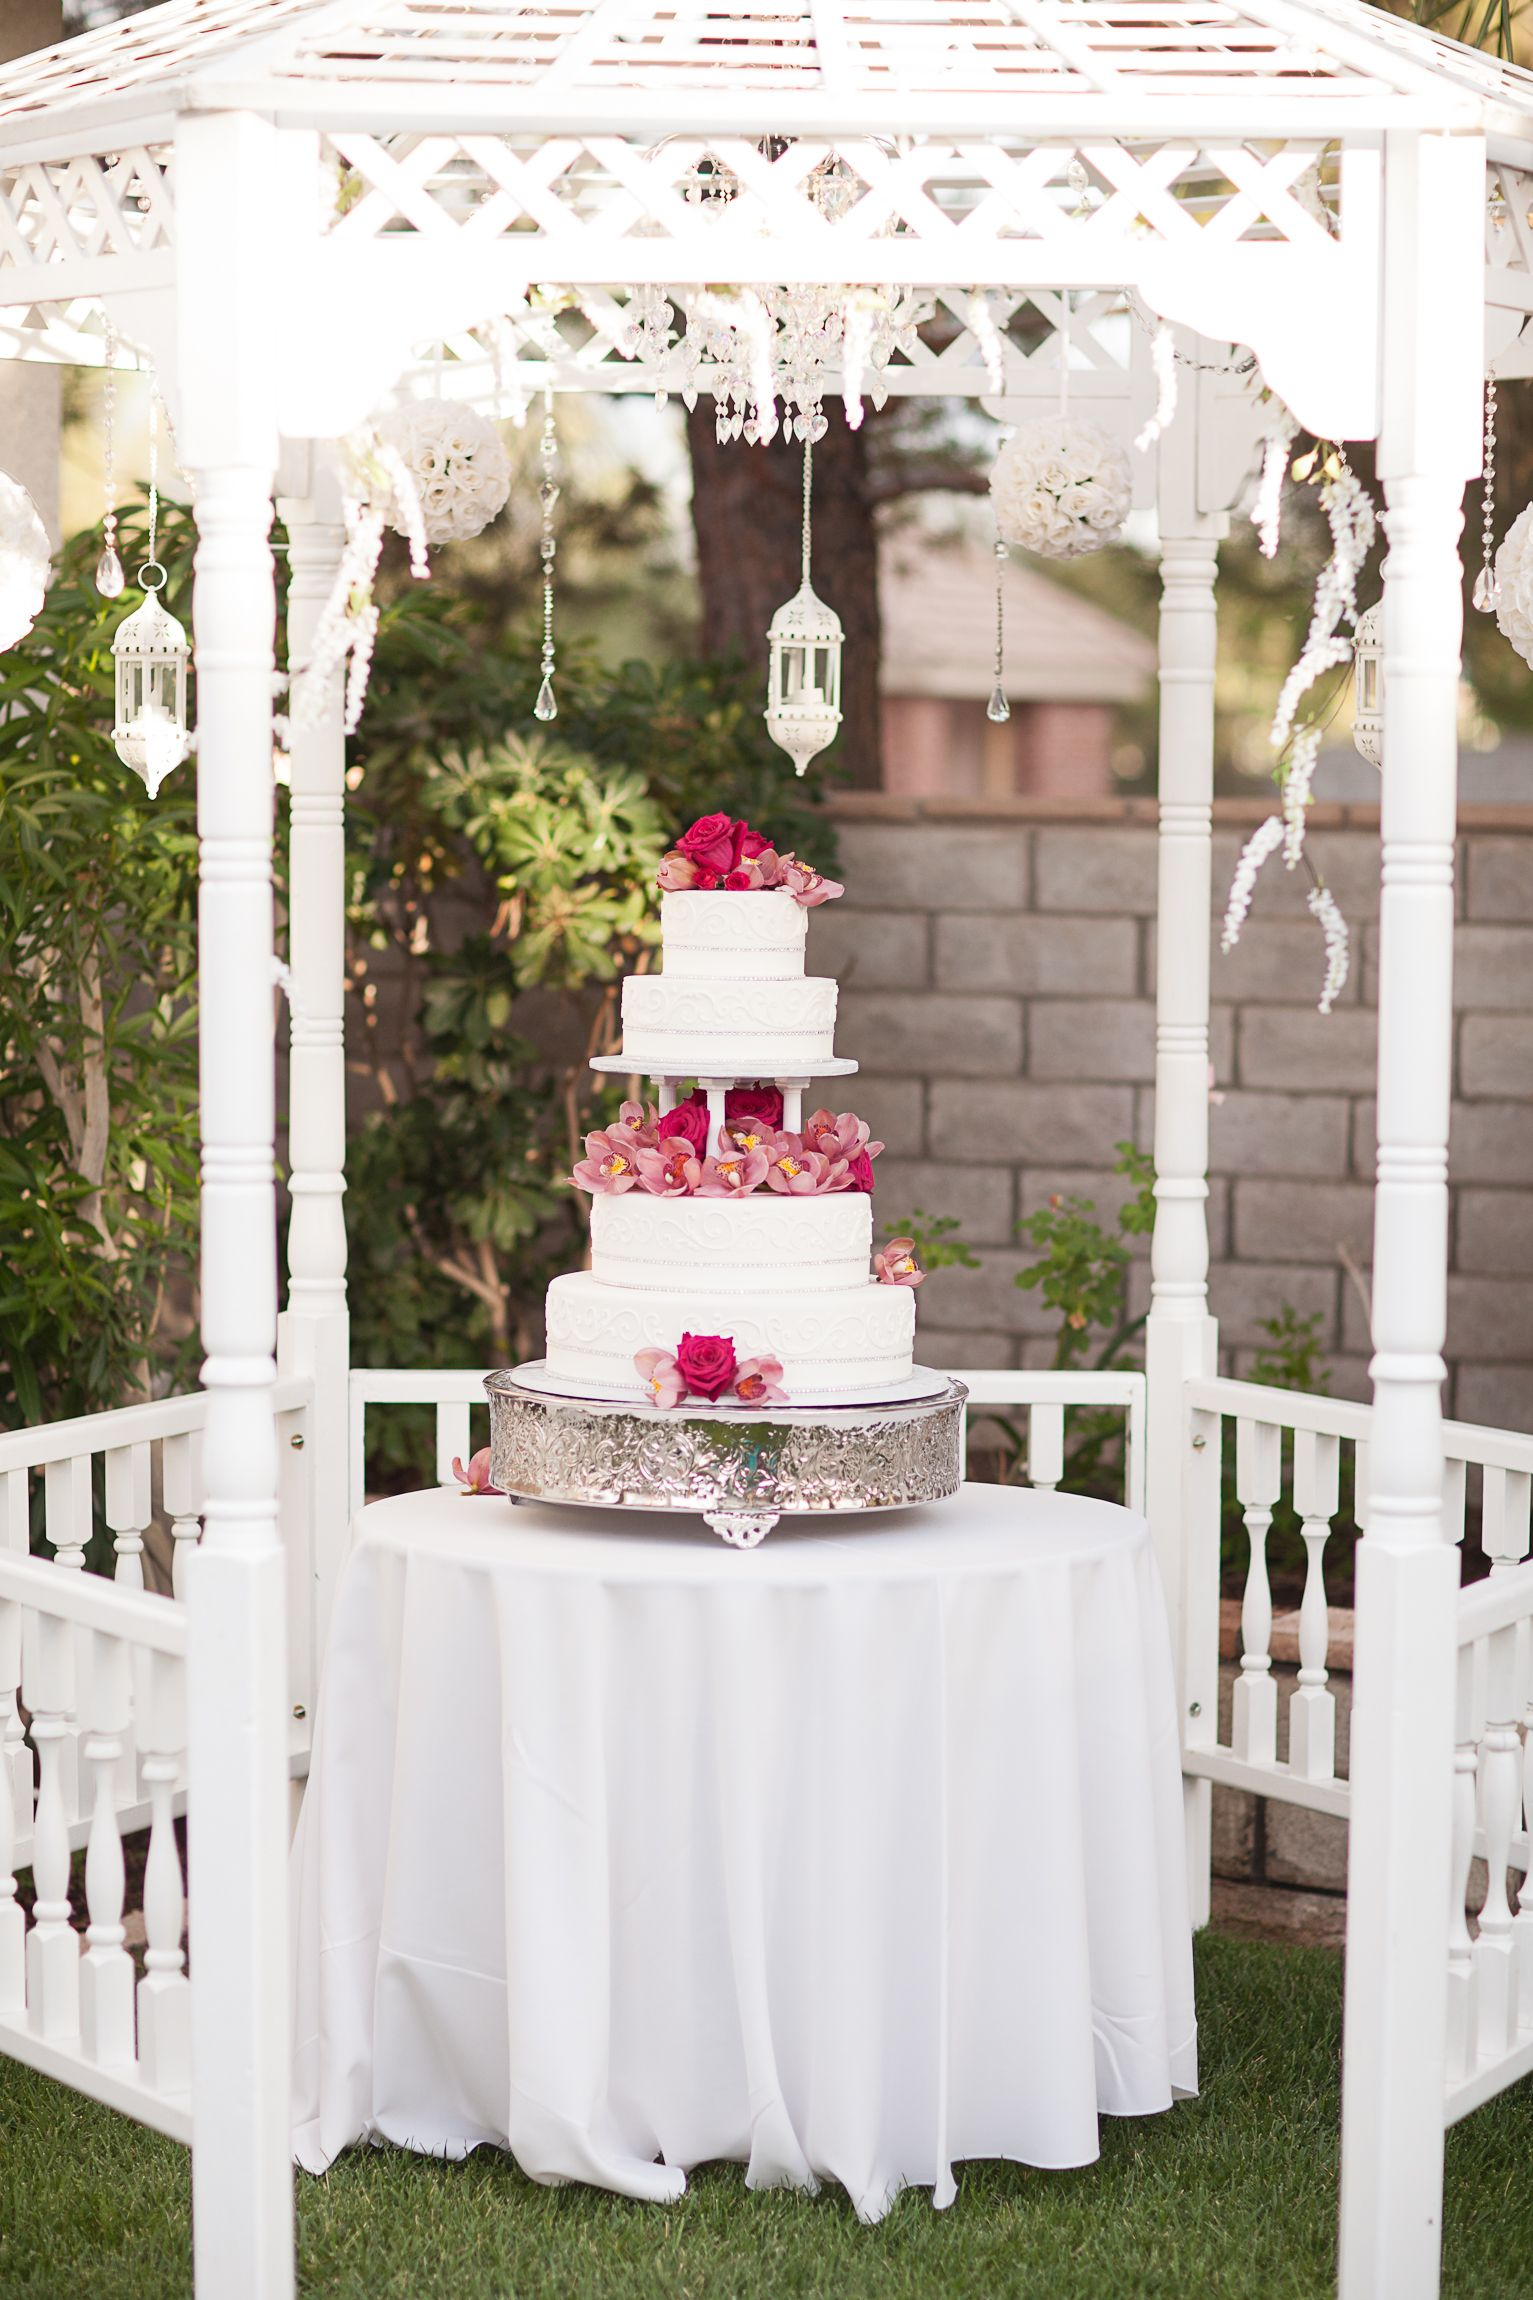 Gazebo For The Wedding Cake Hang A Crystal Chandelier From The Center Point Along With Long White Gazebo Decorations Gazebo Wedding Decorations Gazebo Wedding